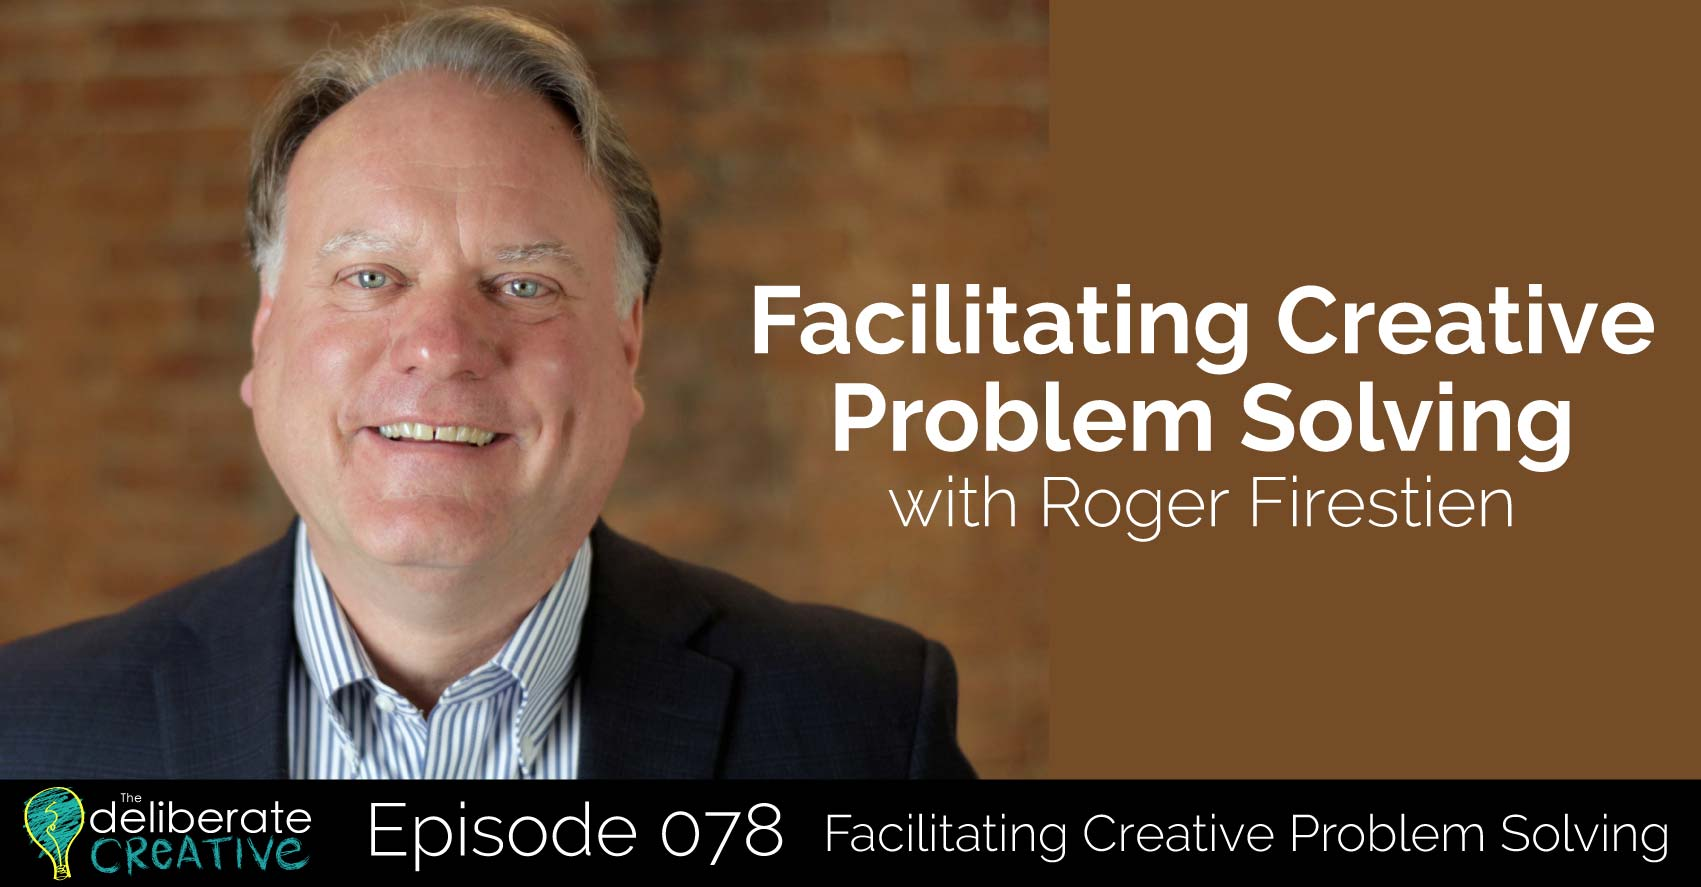 Facilitating Creative Problem Solving with Roger Firestien